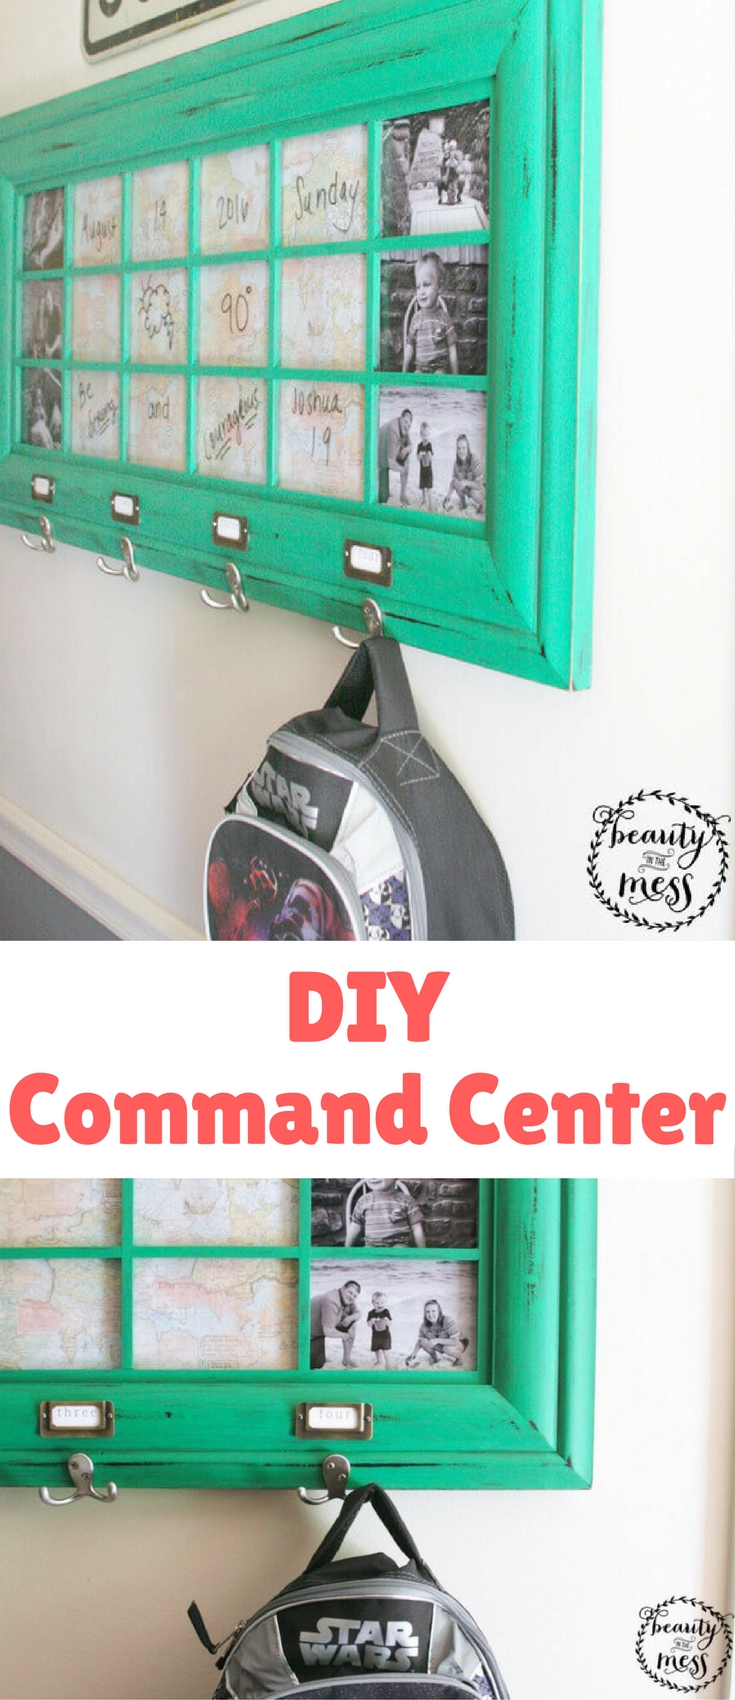 You can streamline the busy out-the-door rush with a simple DIY Command Center that can be finished in an afternoon.